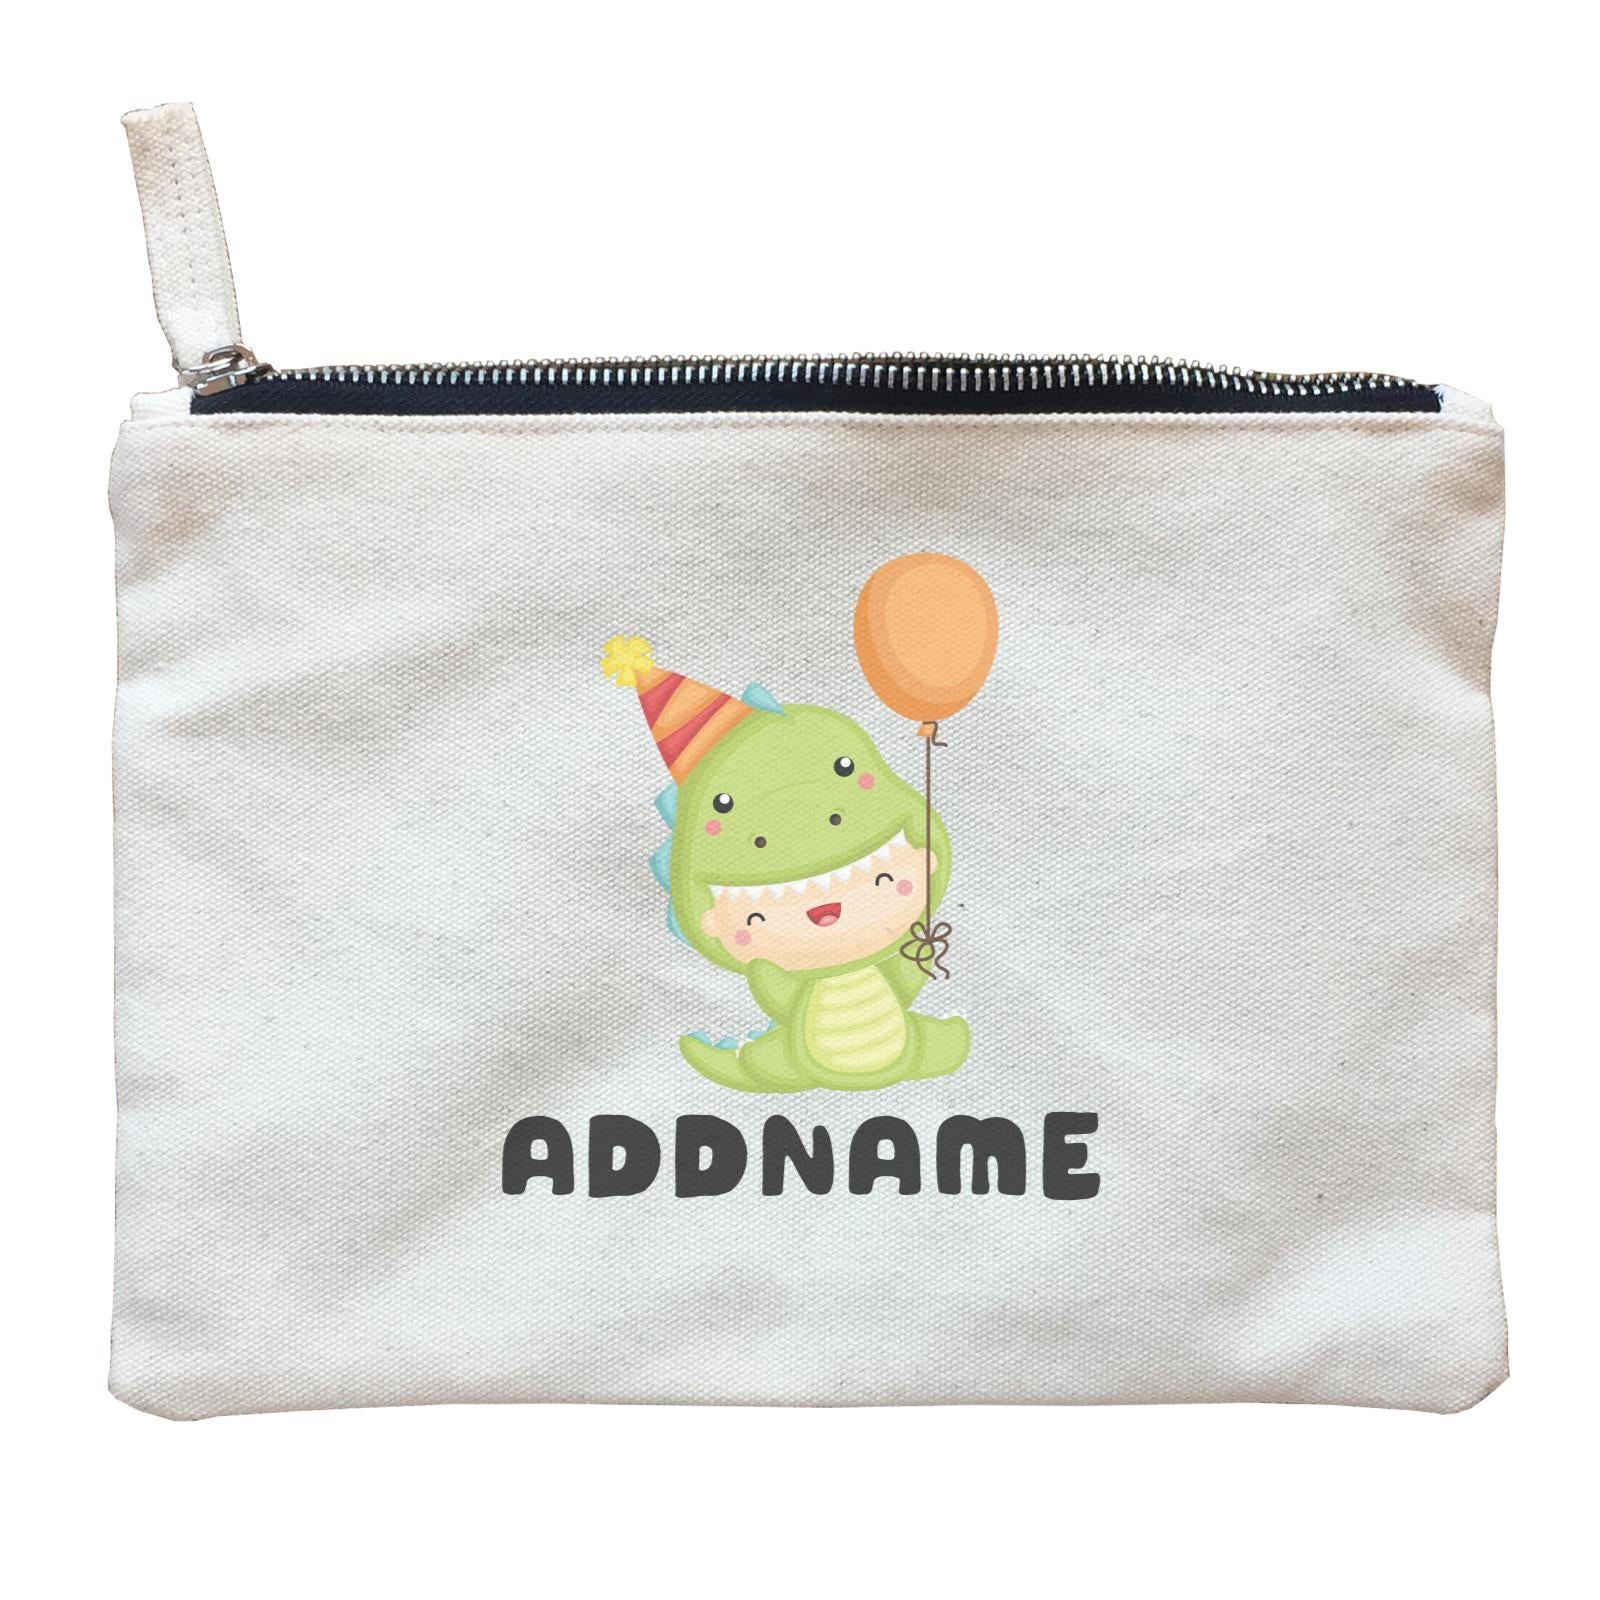 Birthday Dinosaur Happy Baby Wearing Dinosaur Suit And Party Hat Addname Zipper Pouch